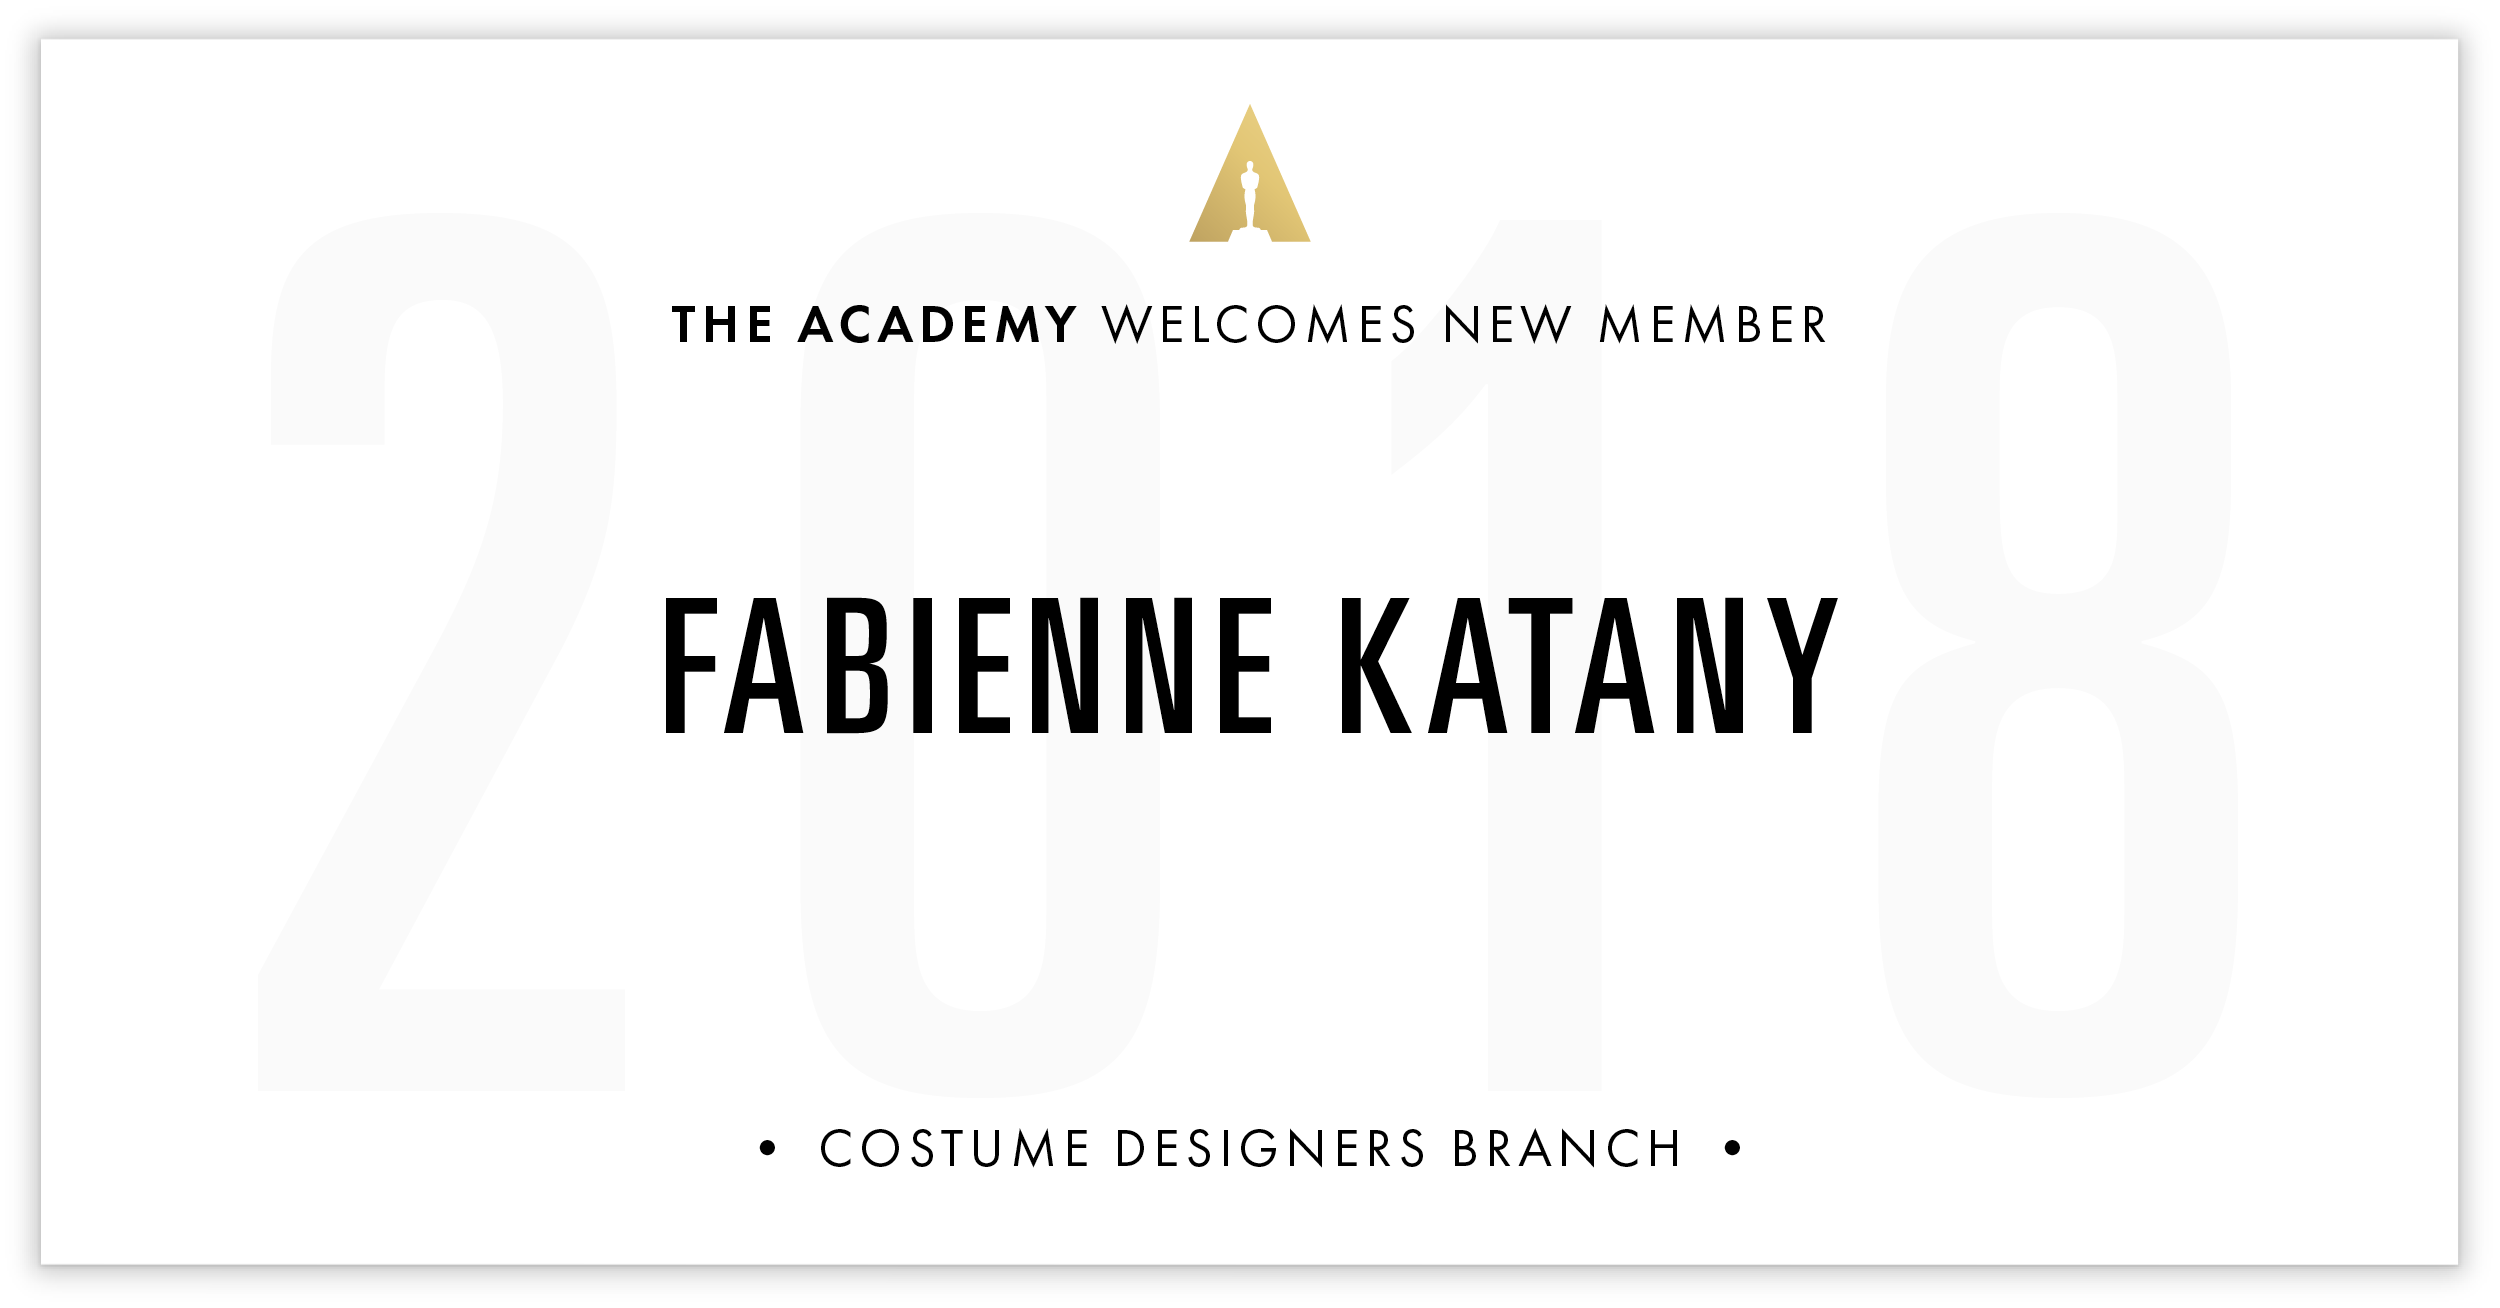 Fabienne Katany is invited!